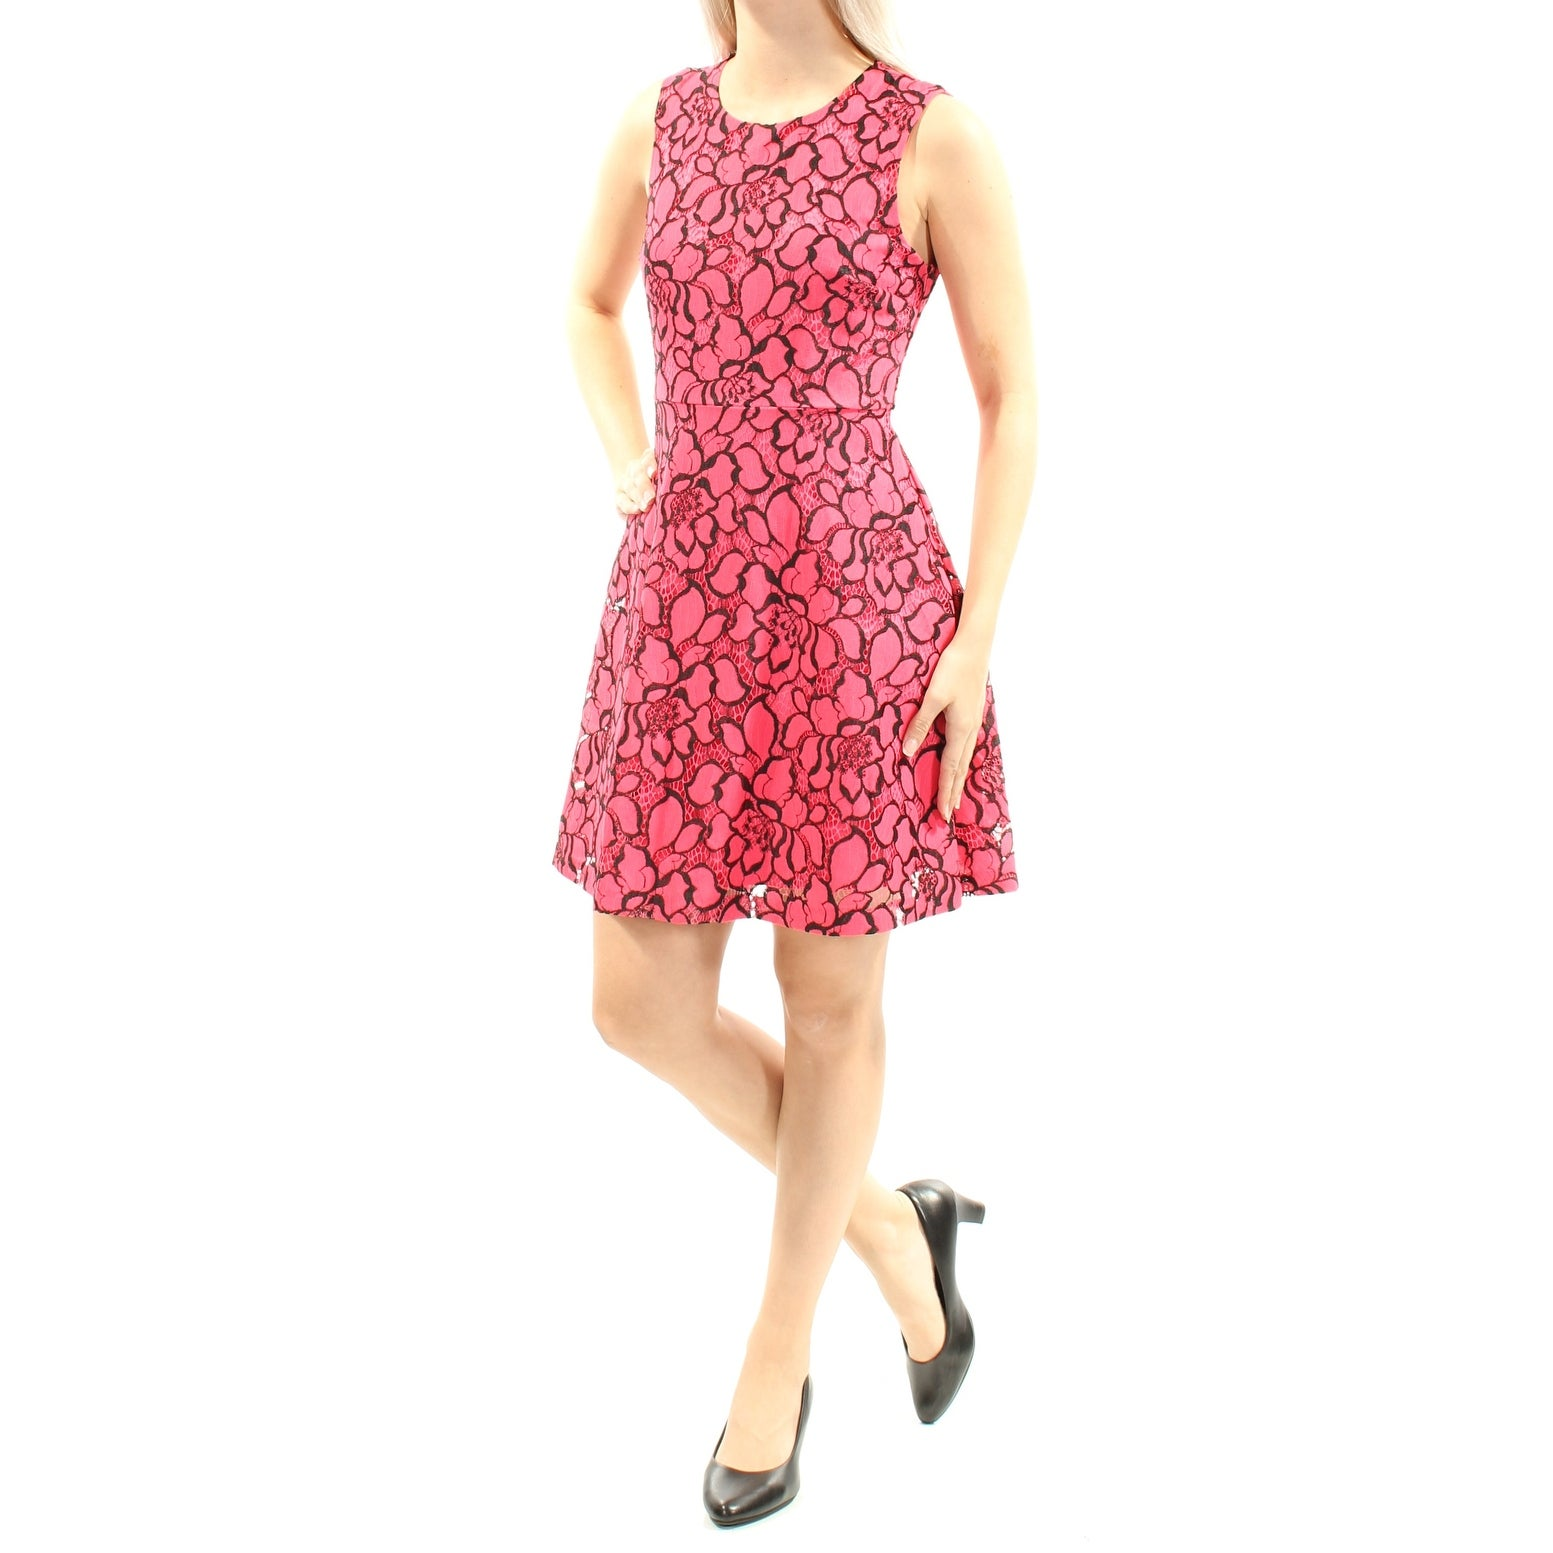 427b6ecc1b Shop MAISON JULES Womens Red Lace Floral Sleeveless Jewel Neck Mini Fit +  Flare Cocktail Dress Size: M - On Sale - Free Shipping On Orders Over $45  ...